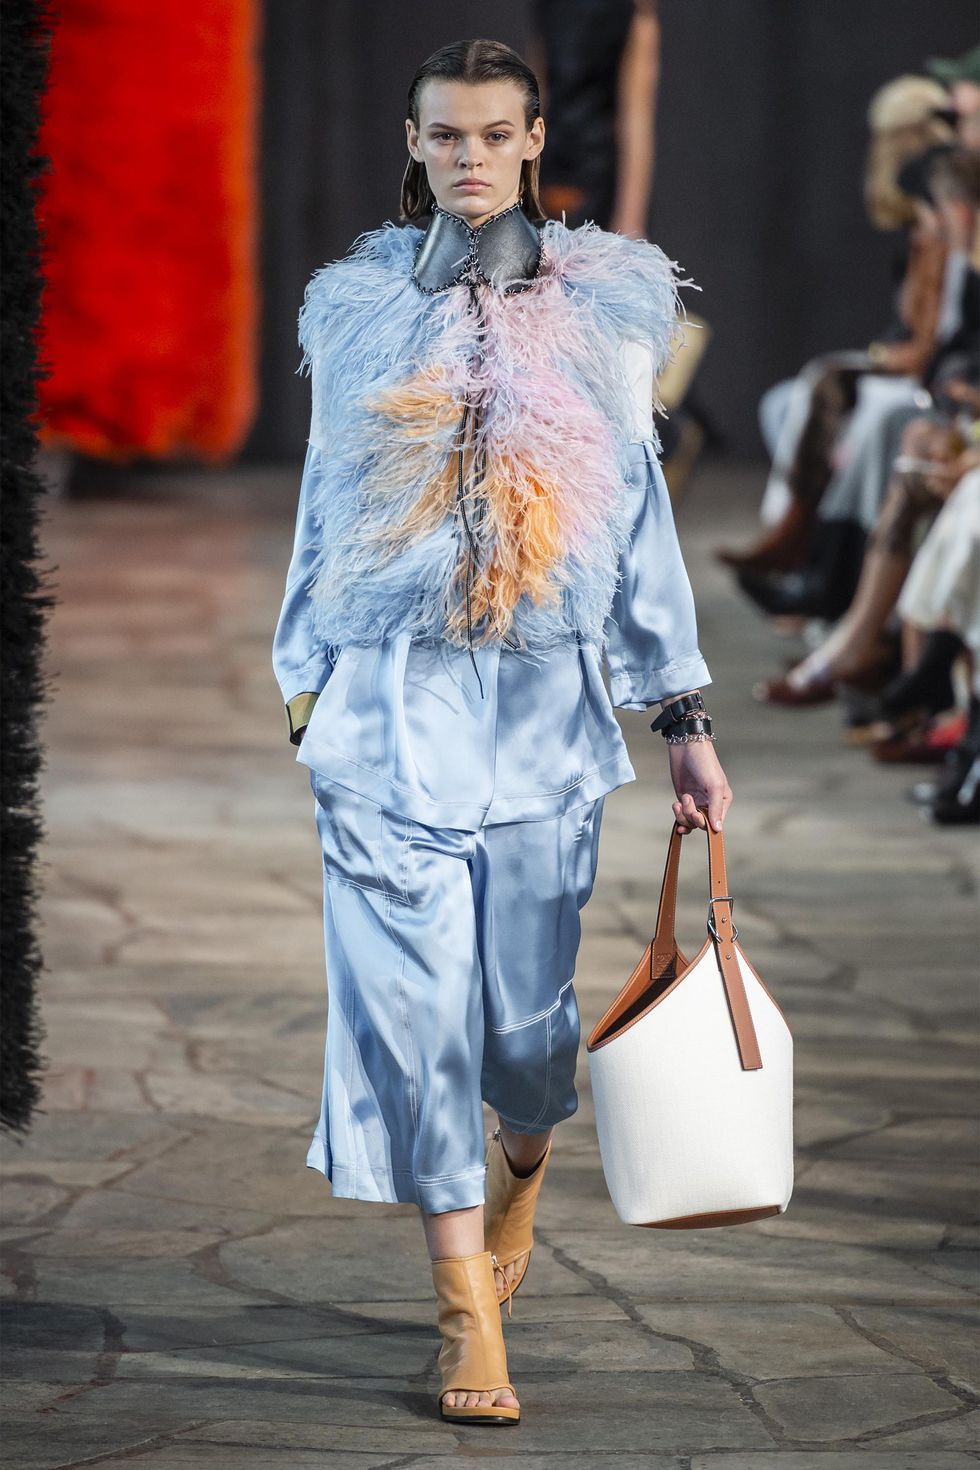 hbz-ss2019-trends-birds-of-a-feather-03-loewe-rs19-0031-1539195458.jpg